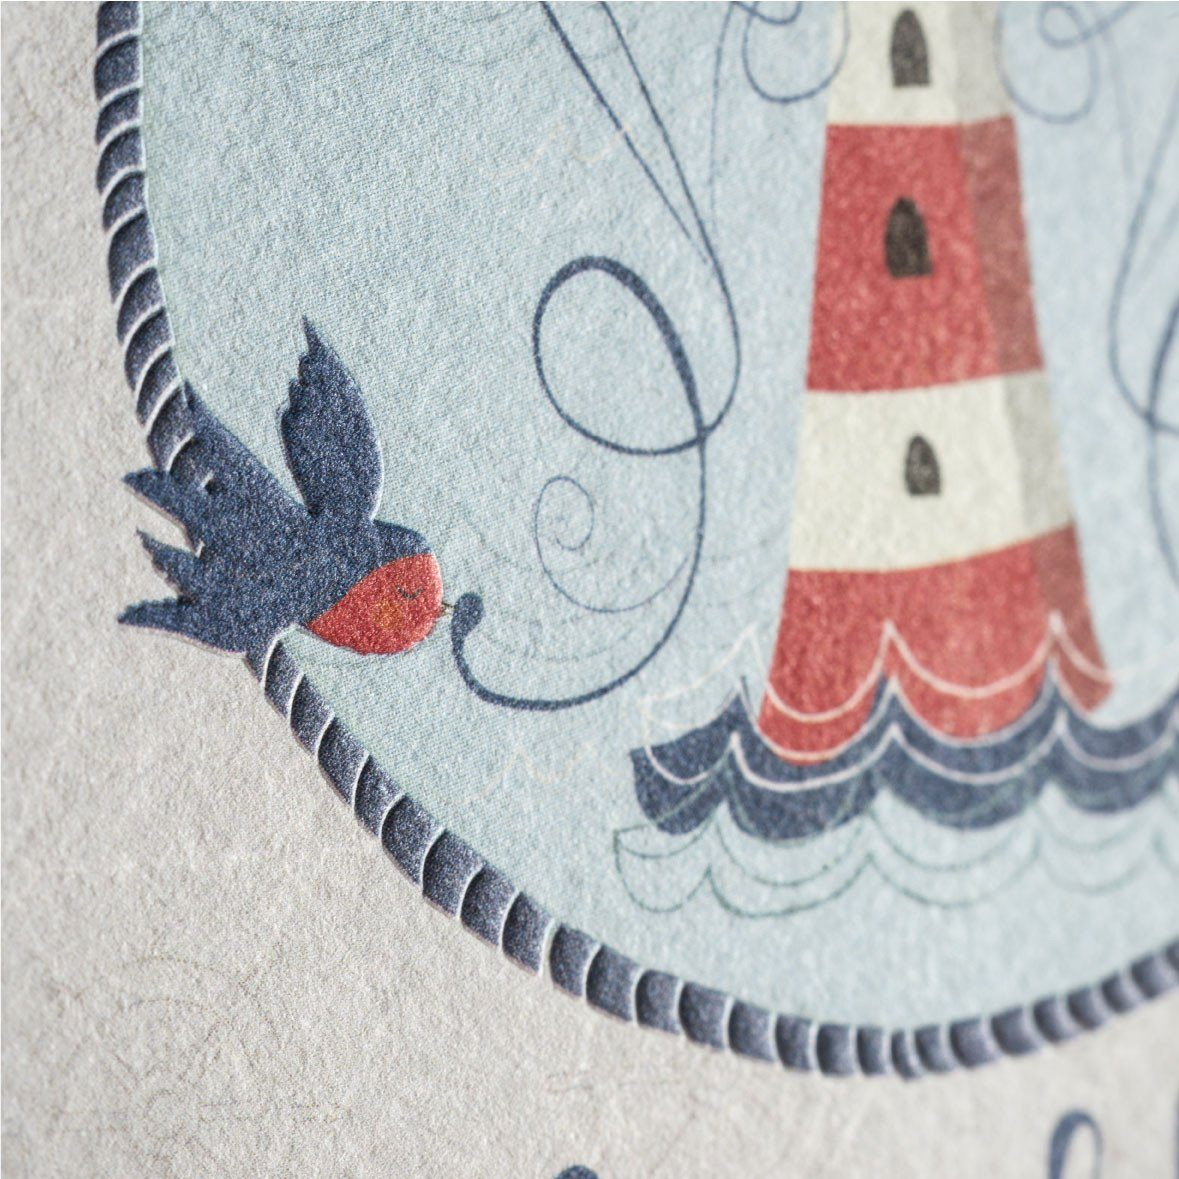 The Lighthouse Greeting Card - Generic Greeting Cards - MULTIFOLIA ATELIER di Rita Girola - Naiise